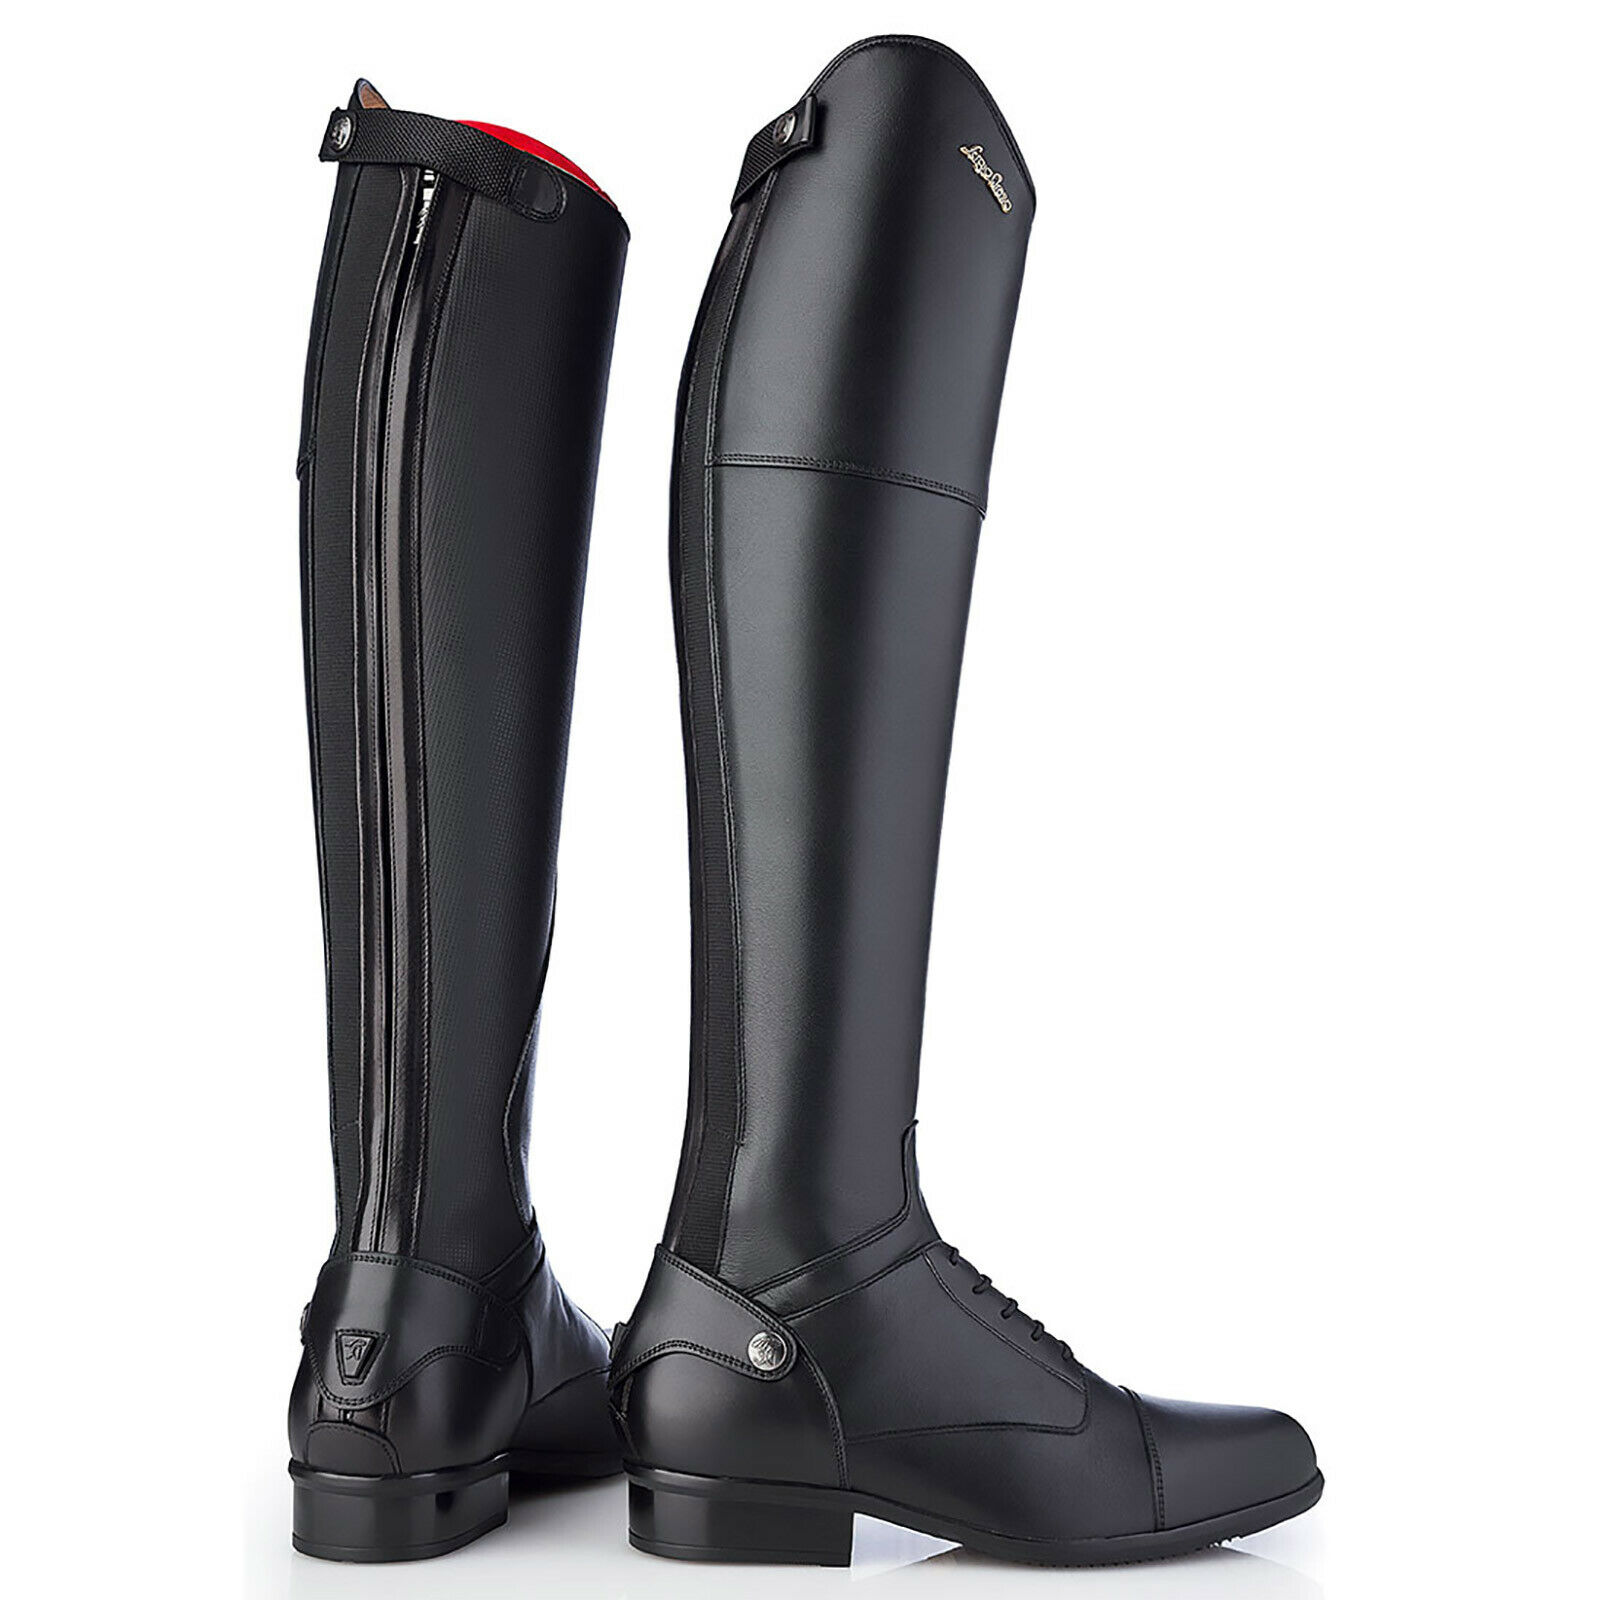 Sergio Grasso Evolution Everyone Line Long  Leather Field Boots - CLEARANCE  for your style of play at the cheapest prices